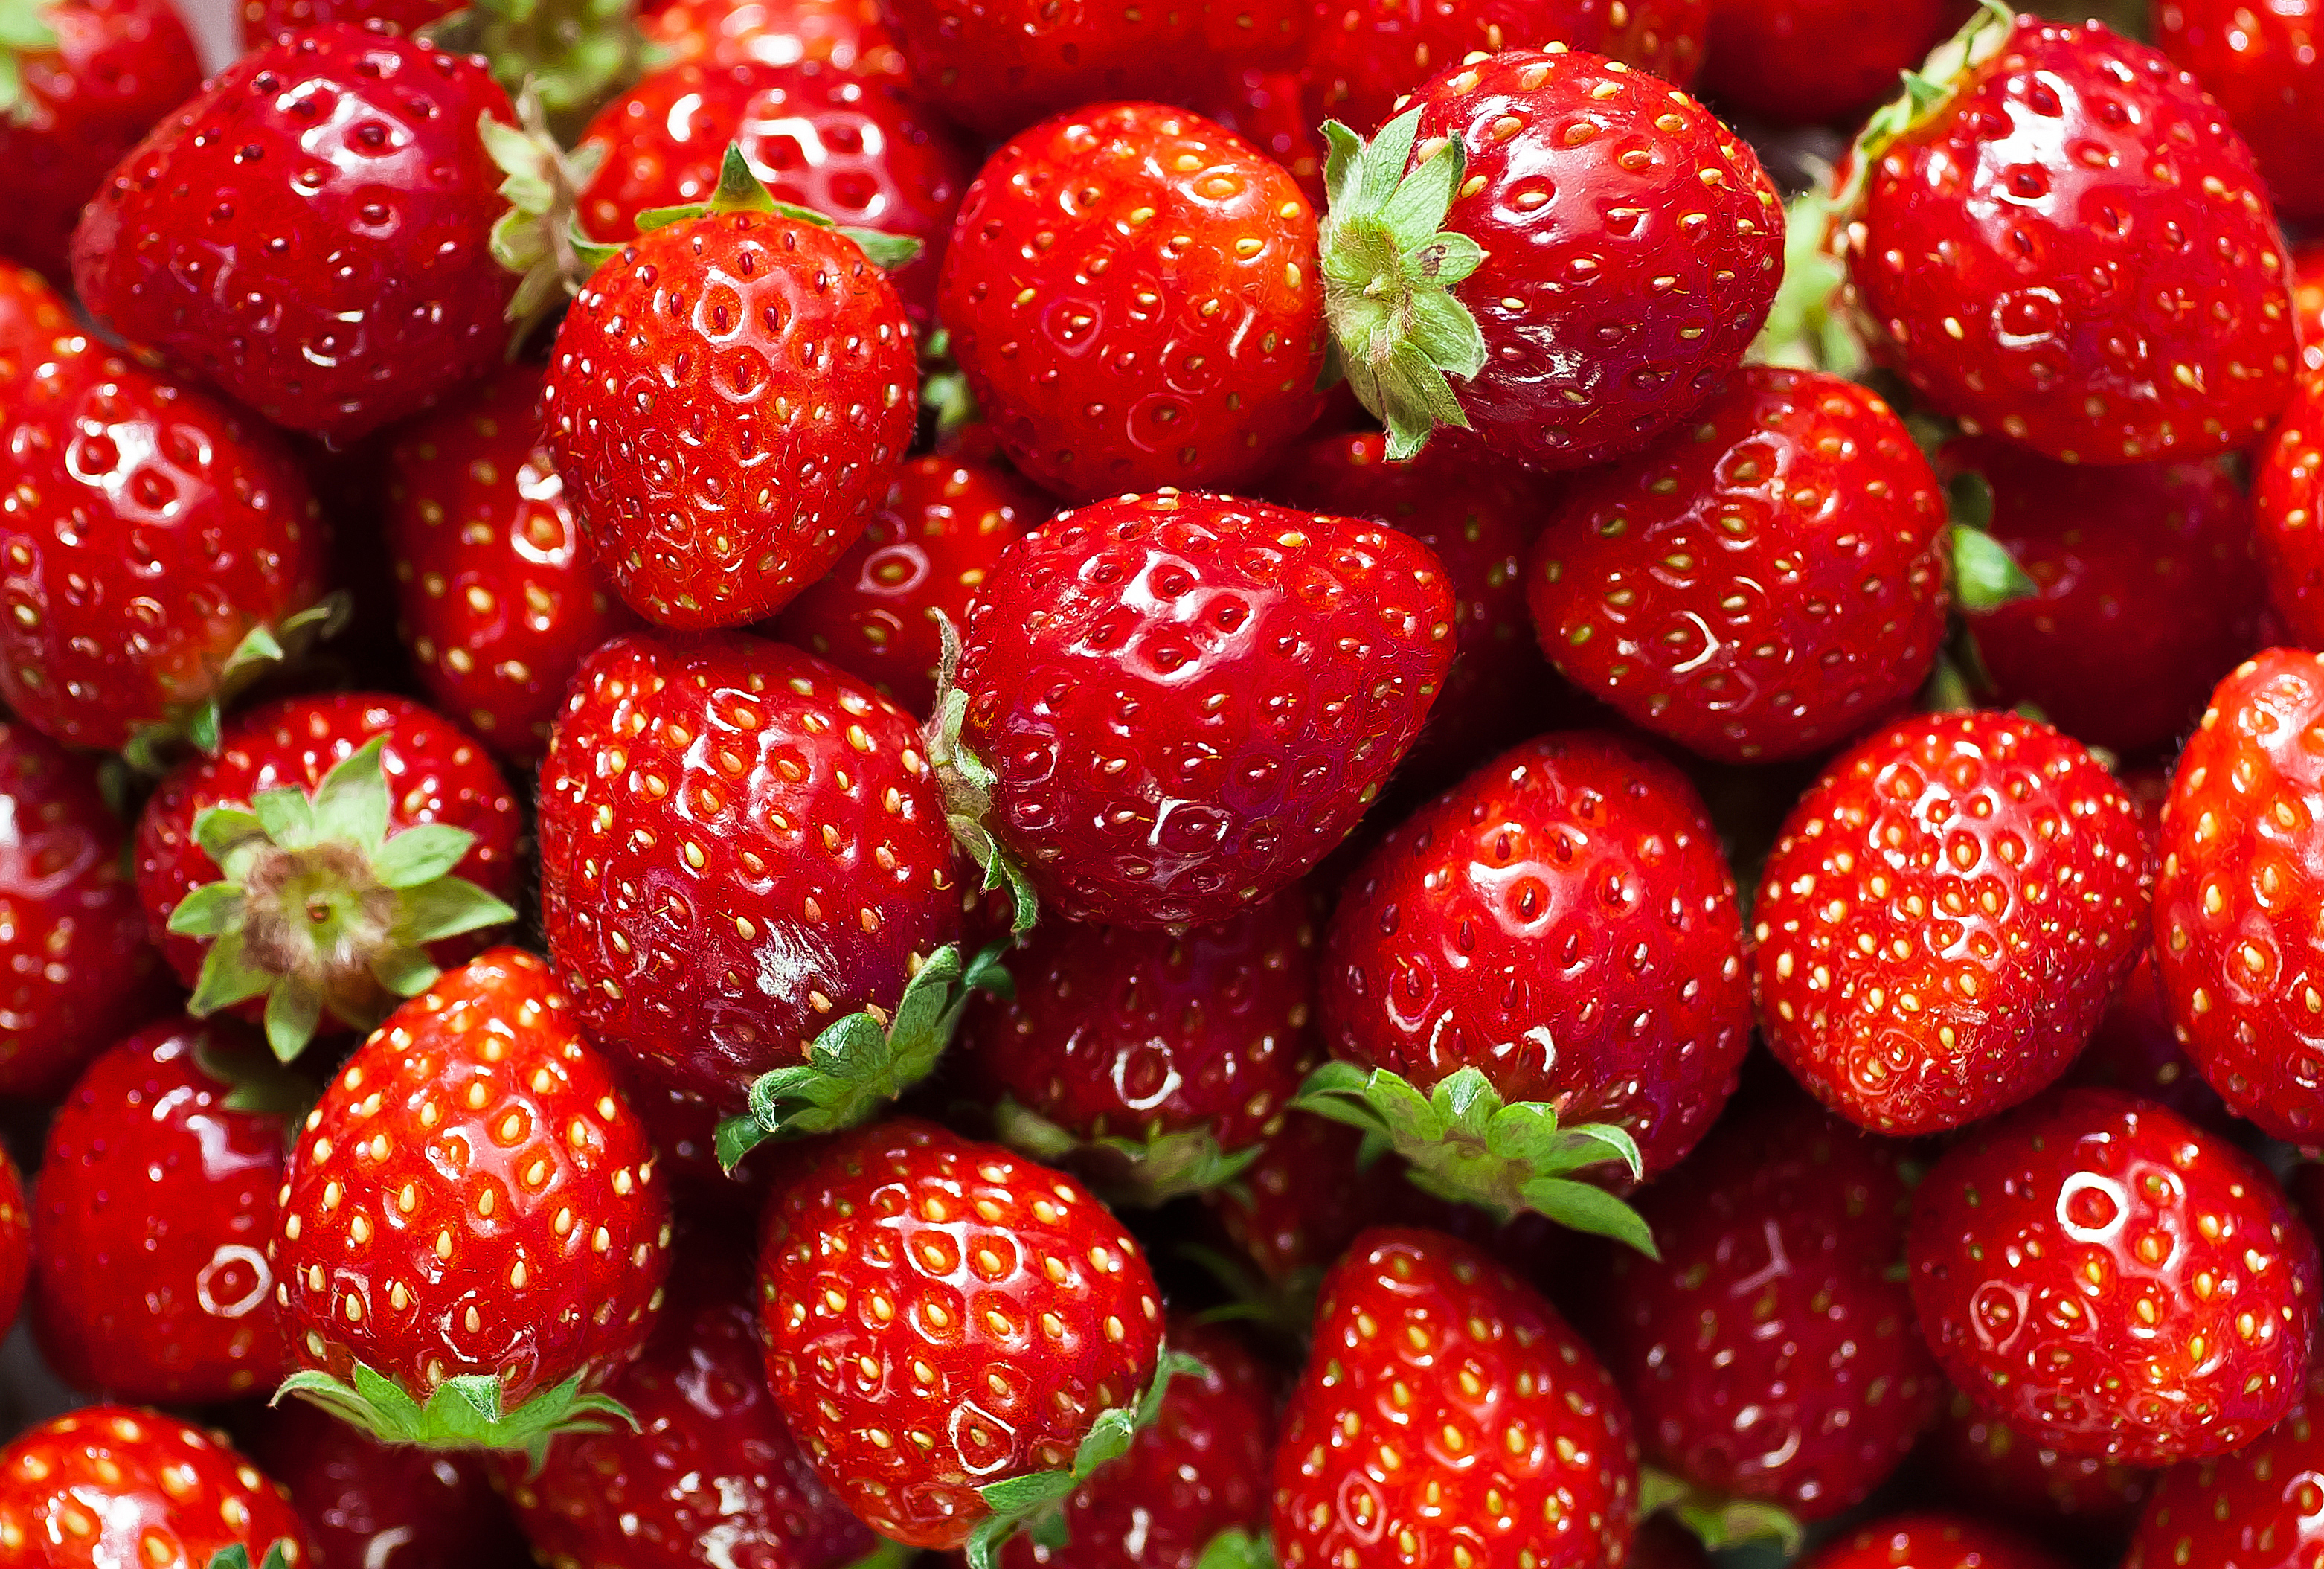 Strawberries: Strawberries are in season in April and according to Romano, some of the best-tasting strawberries will likely hit grocery store shelves in the next few weeks.